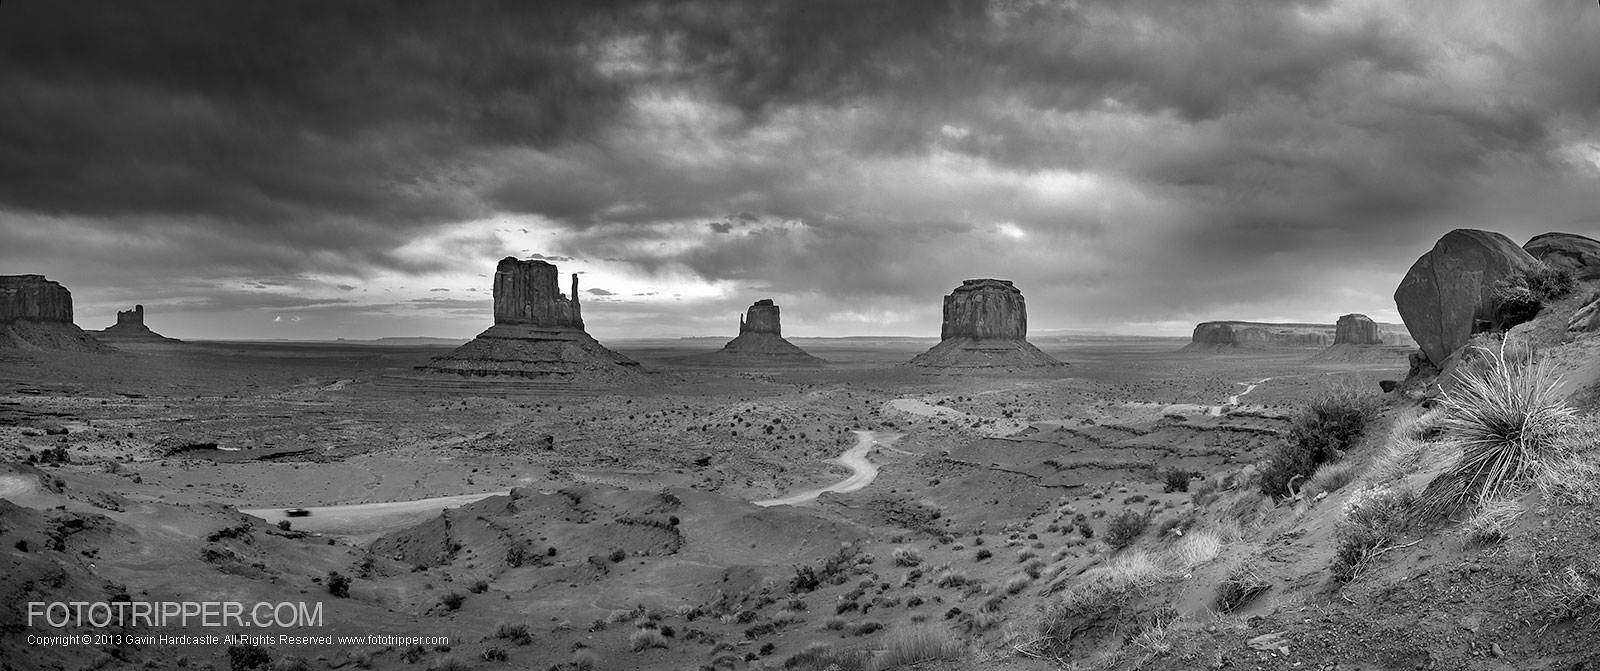 Photoshop tutorial how to make dramatic black white landscapes